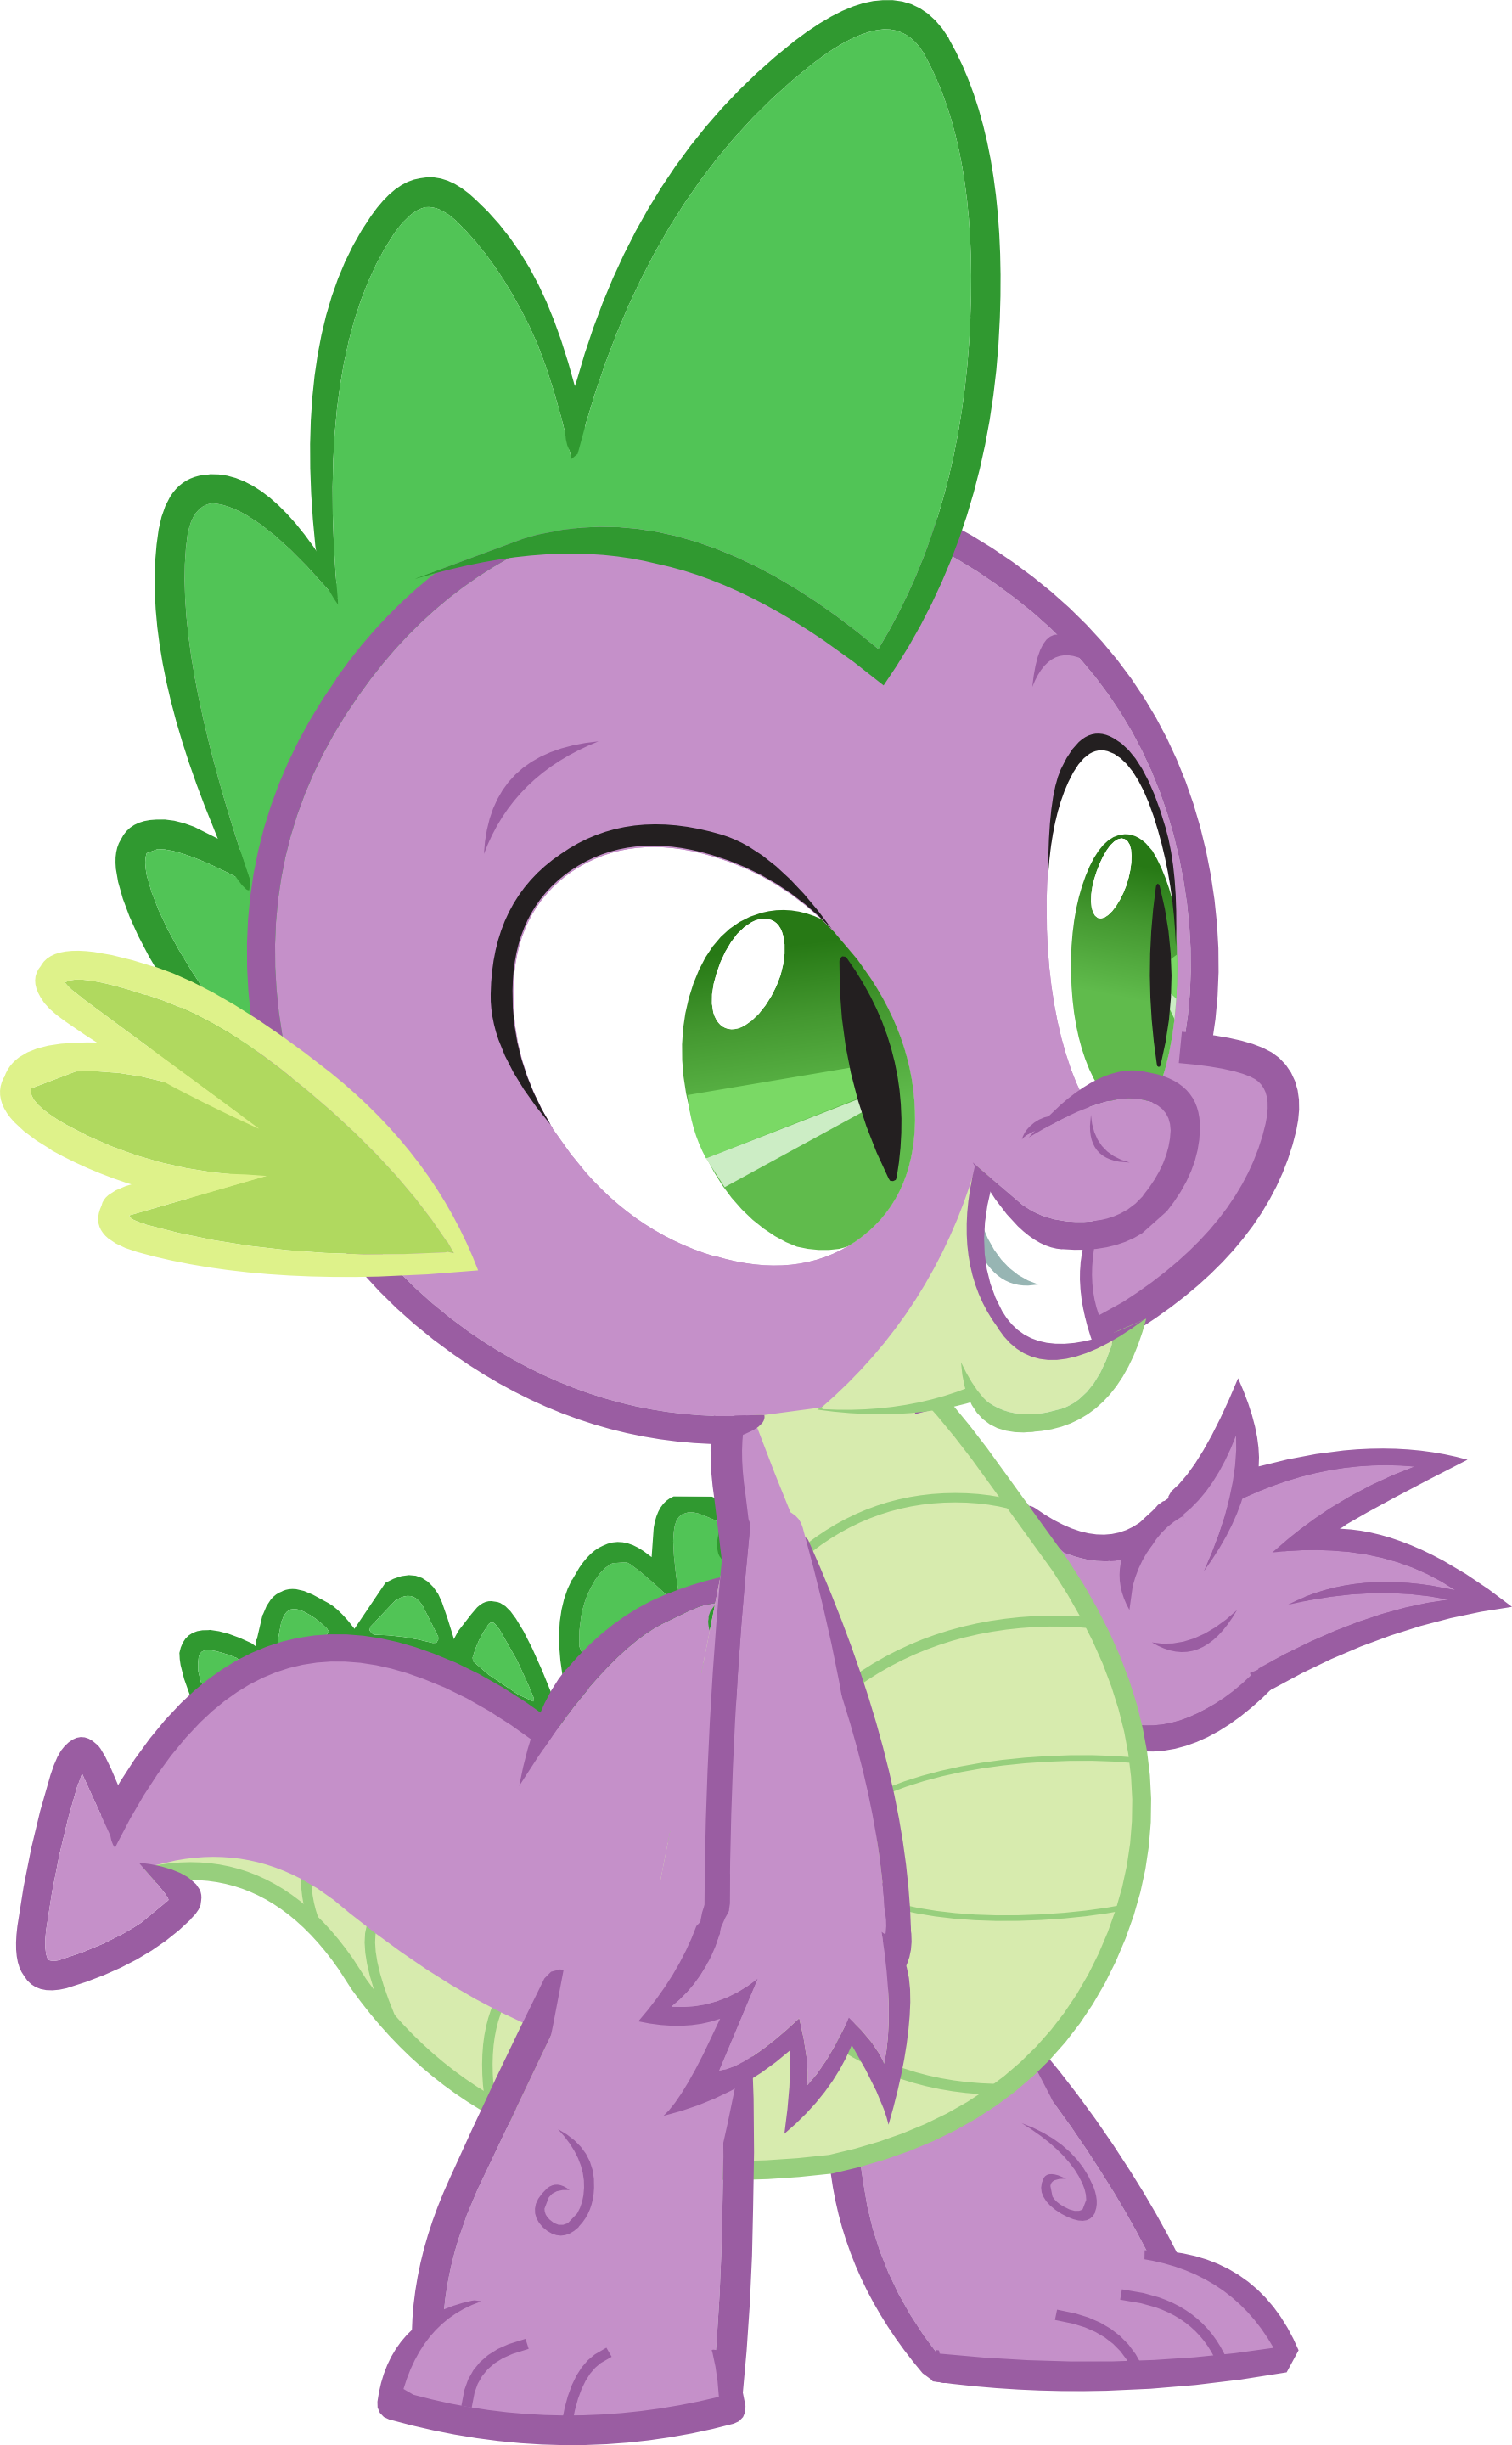 My Little Pony clipart group friend More n°3 Pin More and